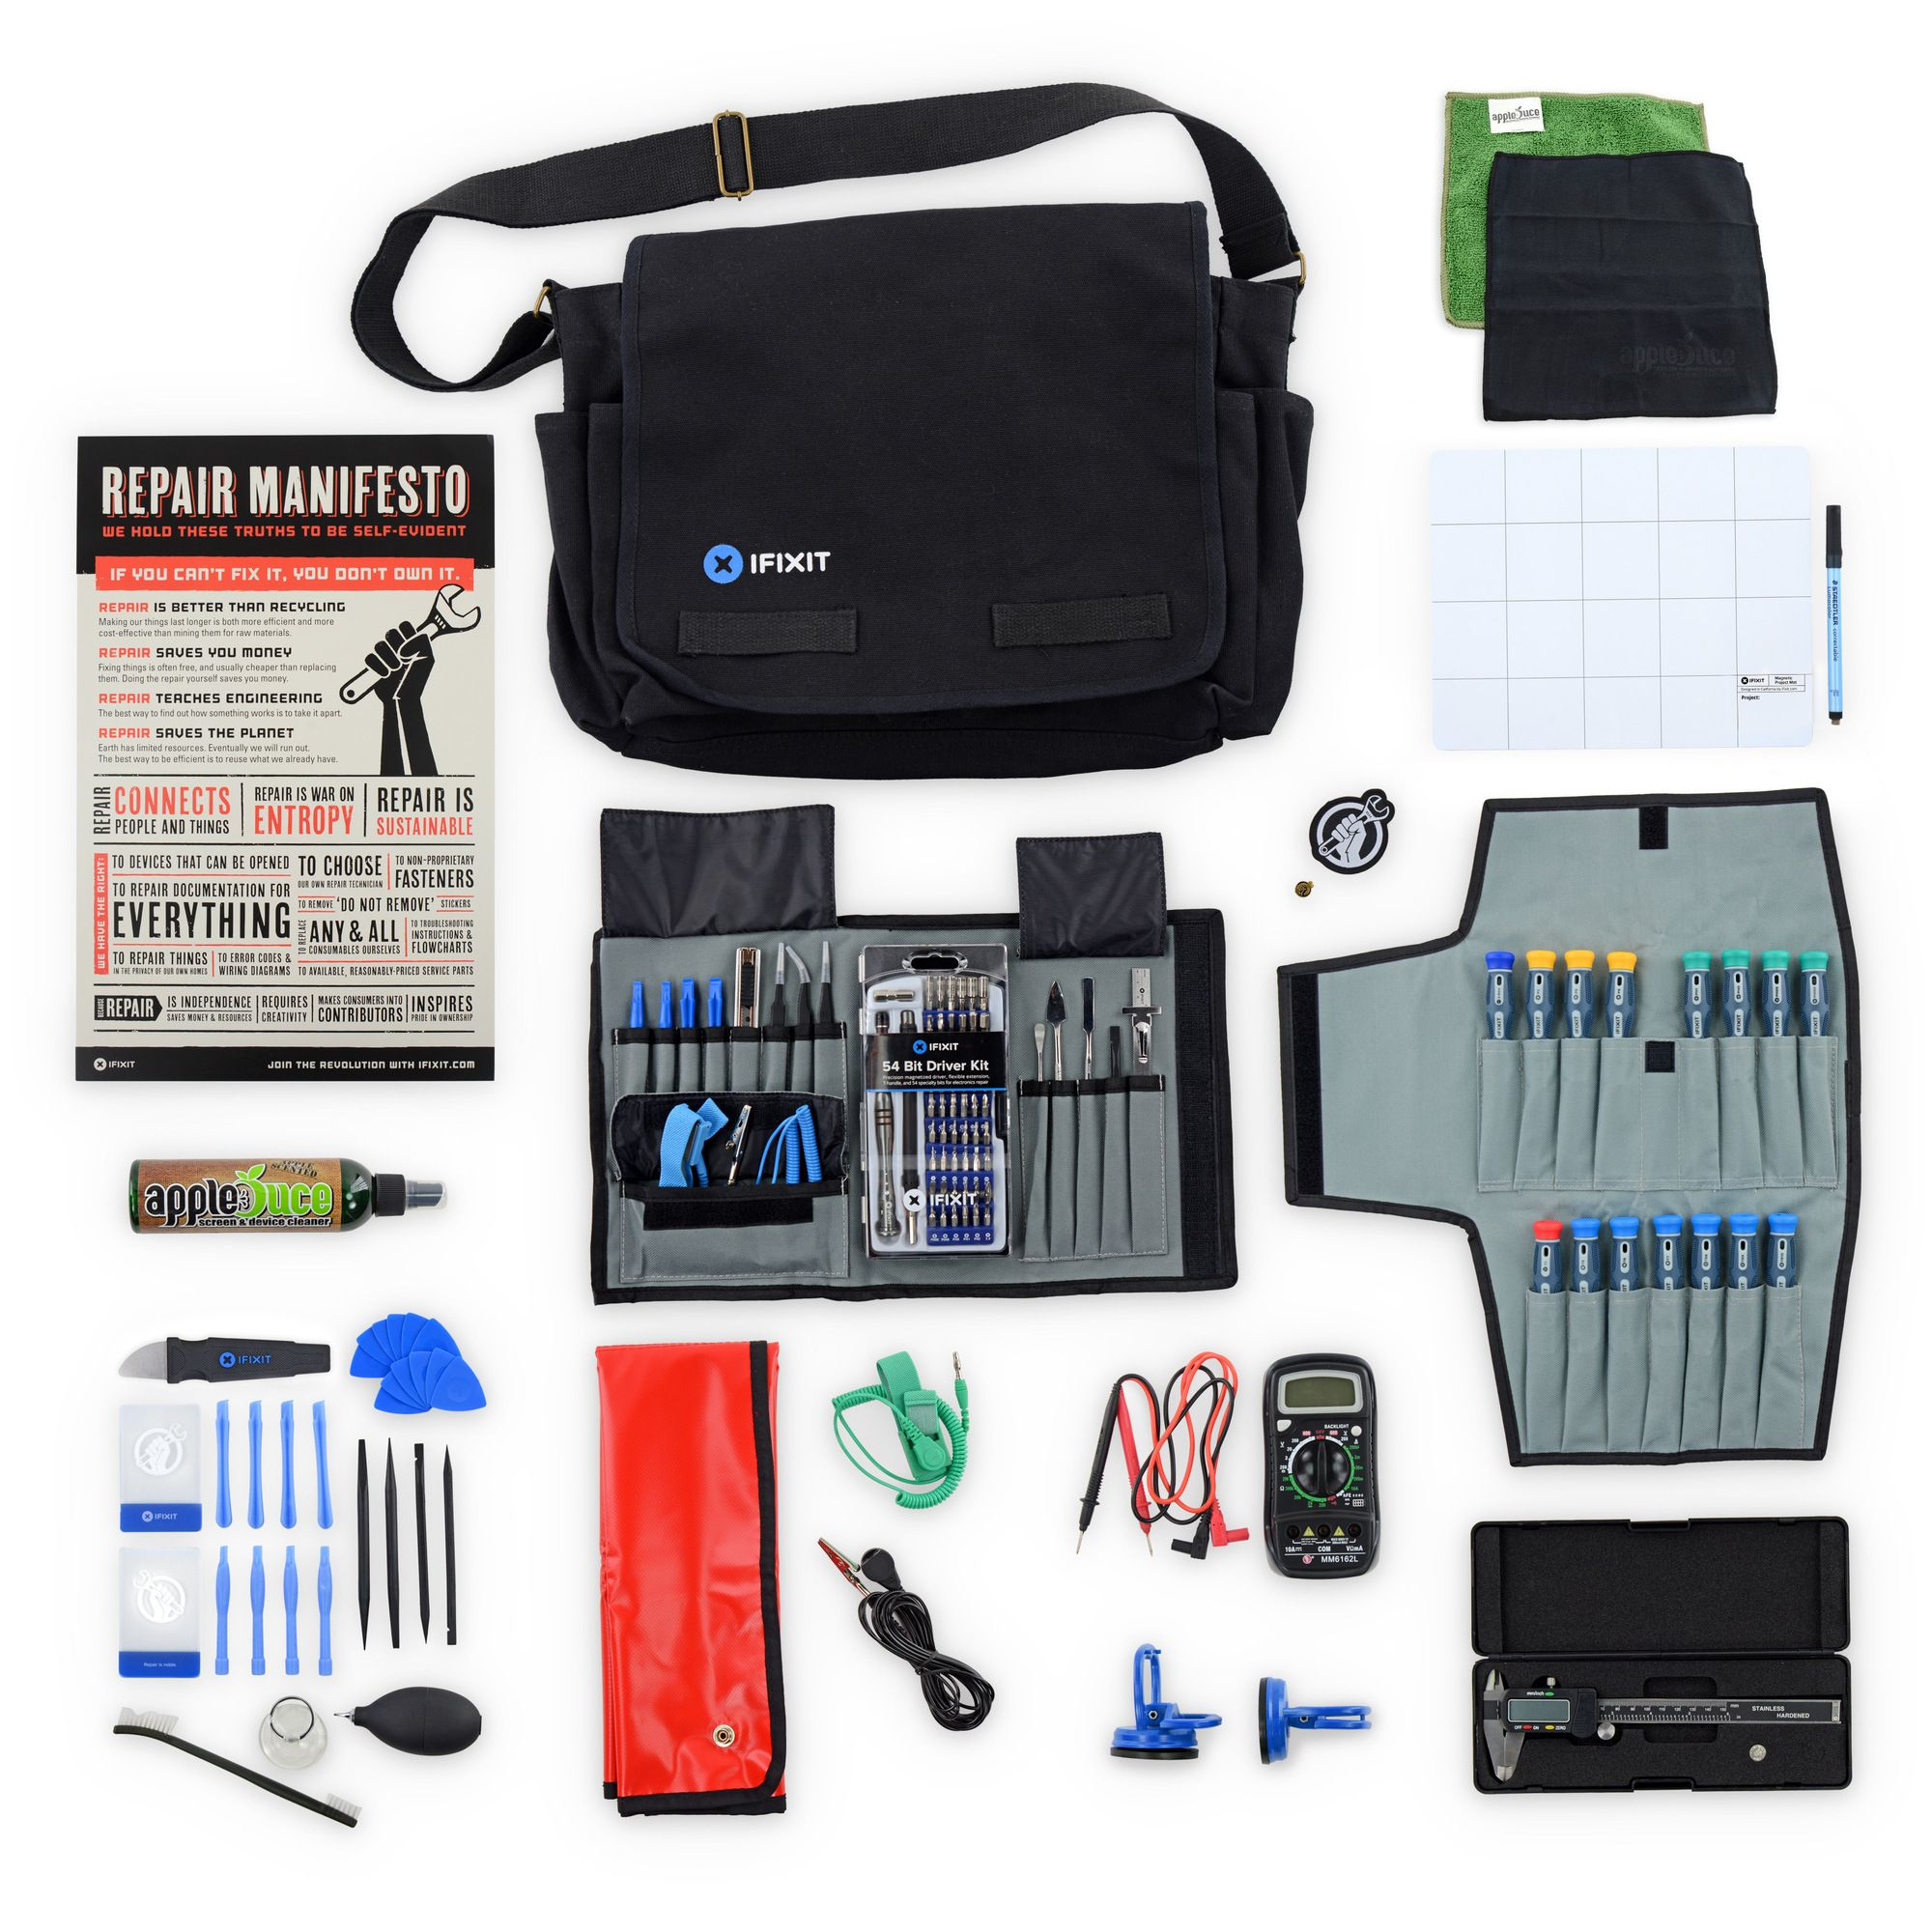 27964cc559af Repair Business Toolkit - Everything you need to start your own electronics  repair business in a handy messenger bag. Whether you are a formal  technician or ...